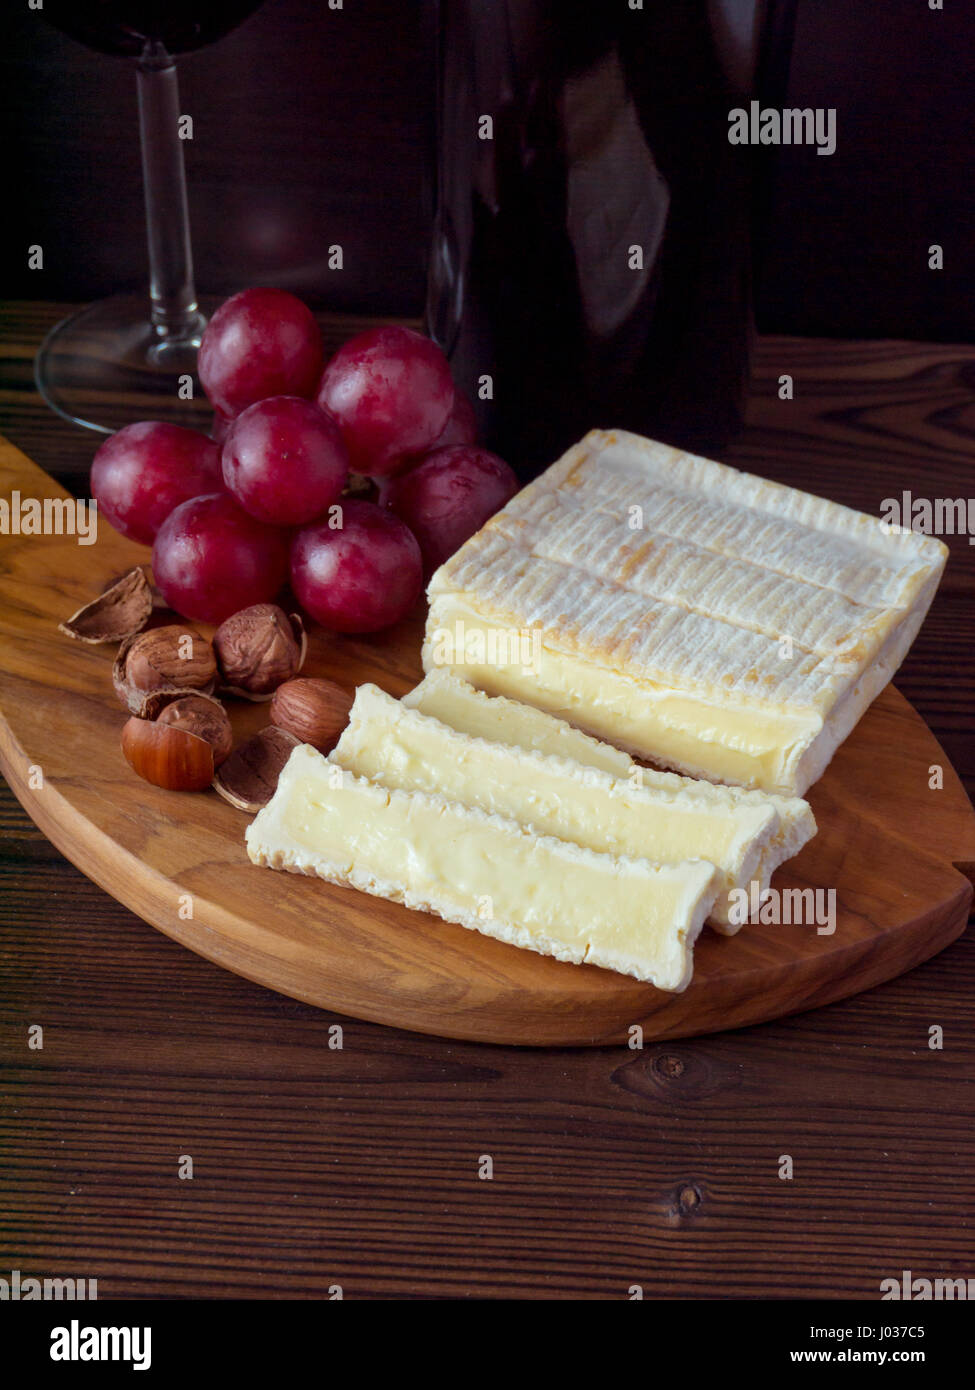 Brick shaped cheese with white mold, hazelnuts, red grape and wine in the glass and bottle - Stock Image